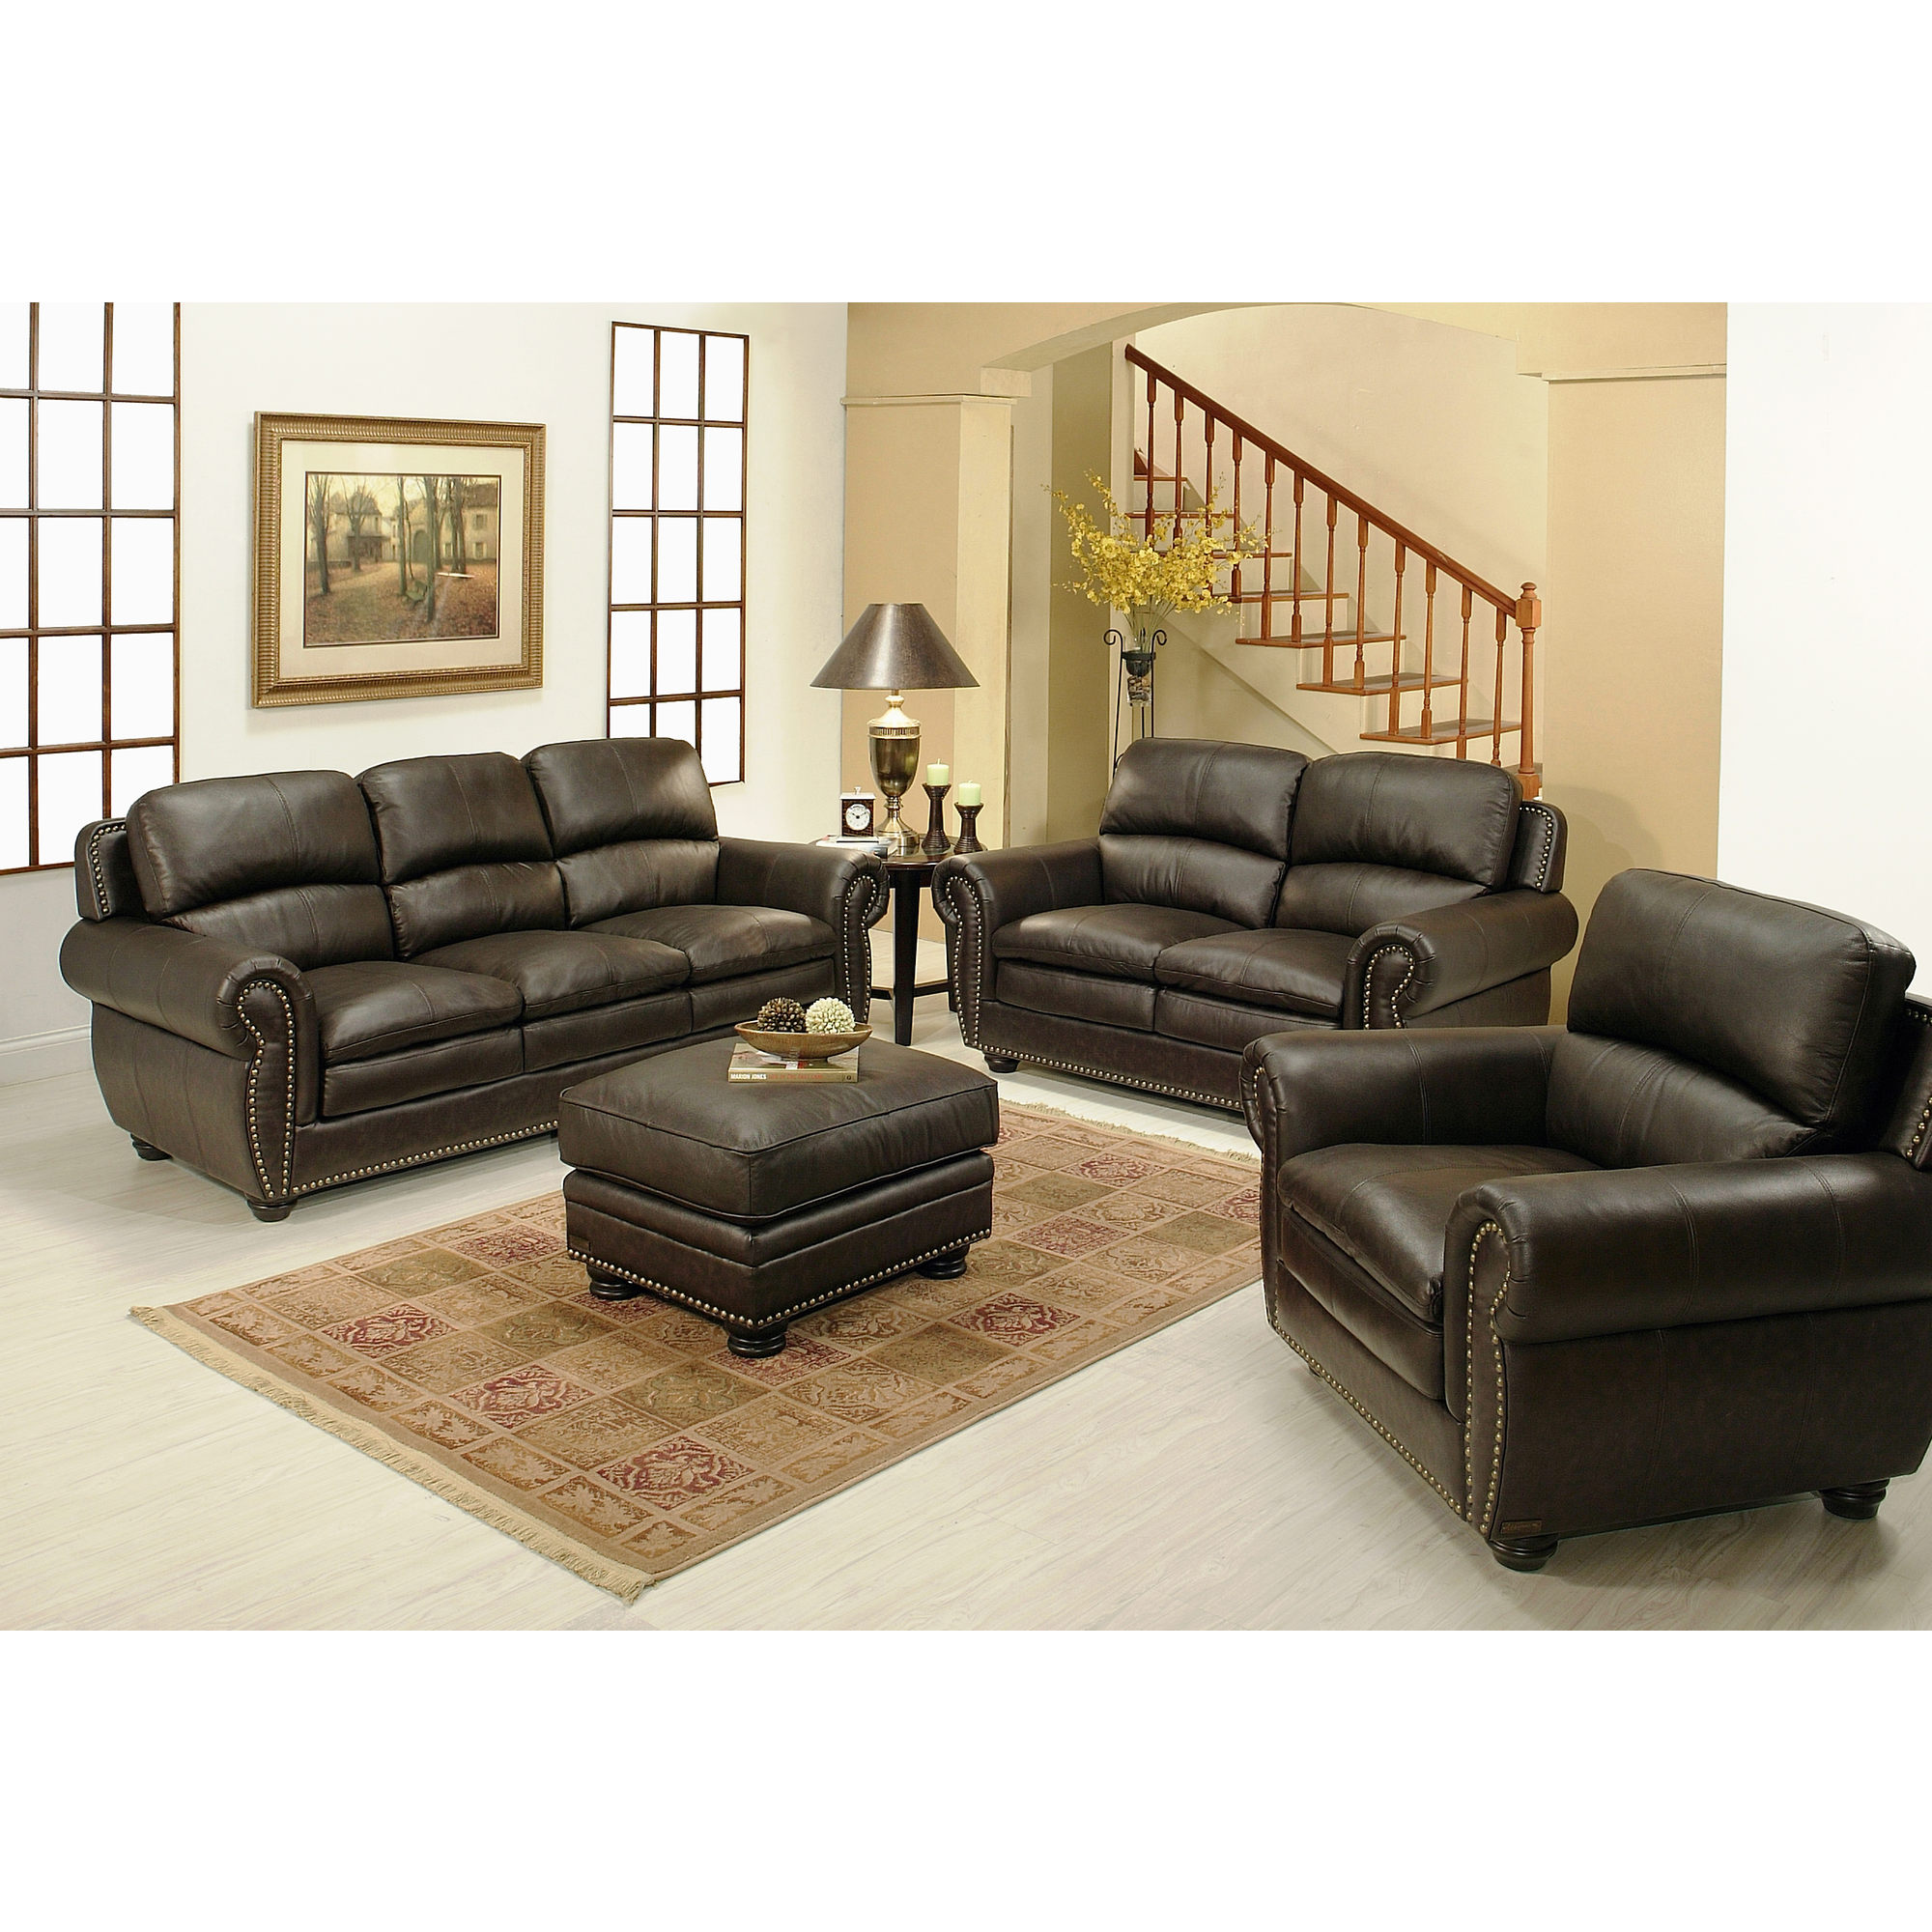 Cheap Leather Sectionals | Costco Leather Sectional | Genuine Leather Sectional with Chaise